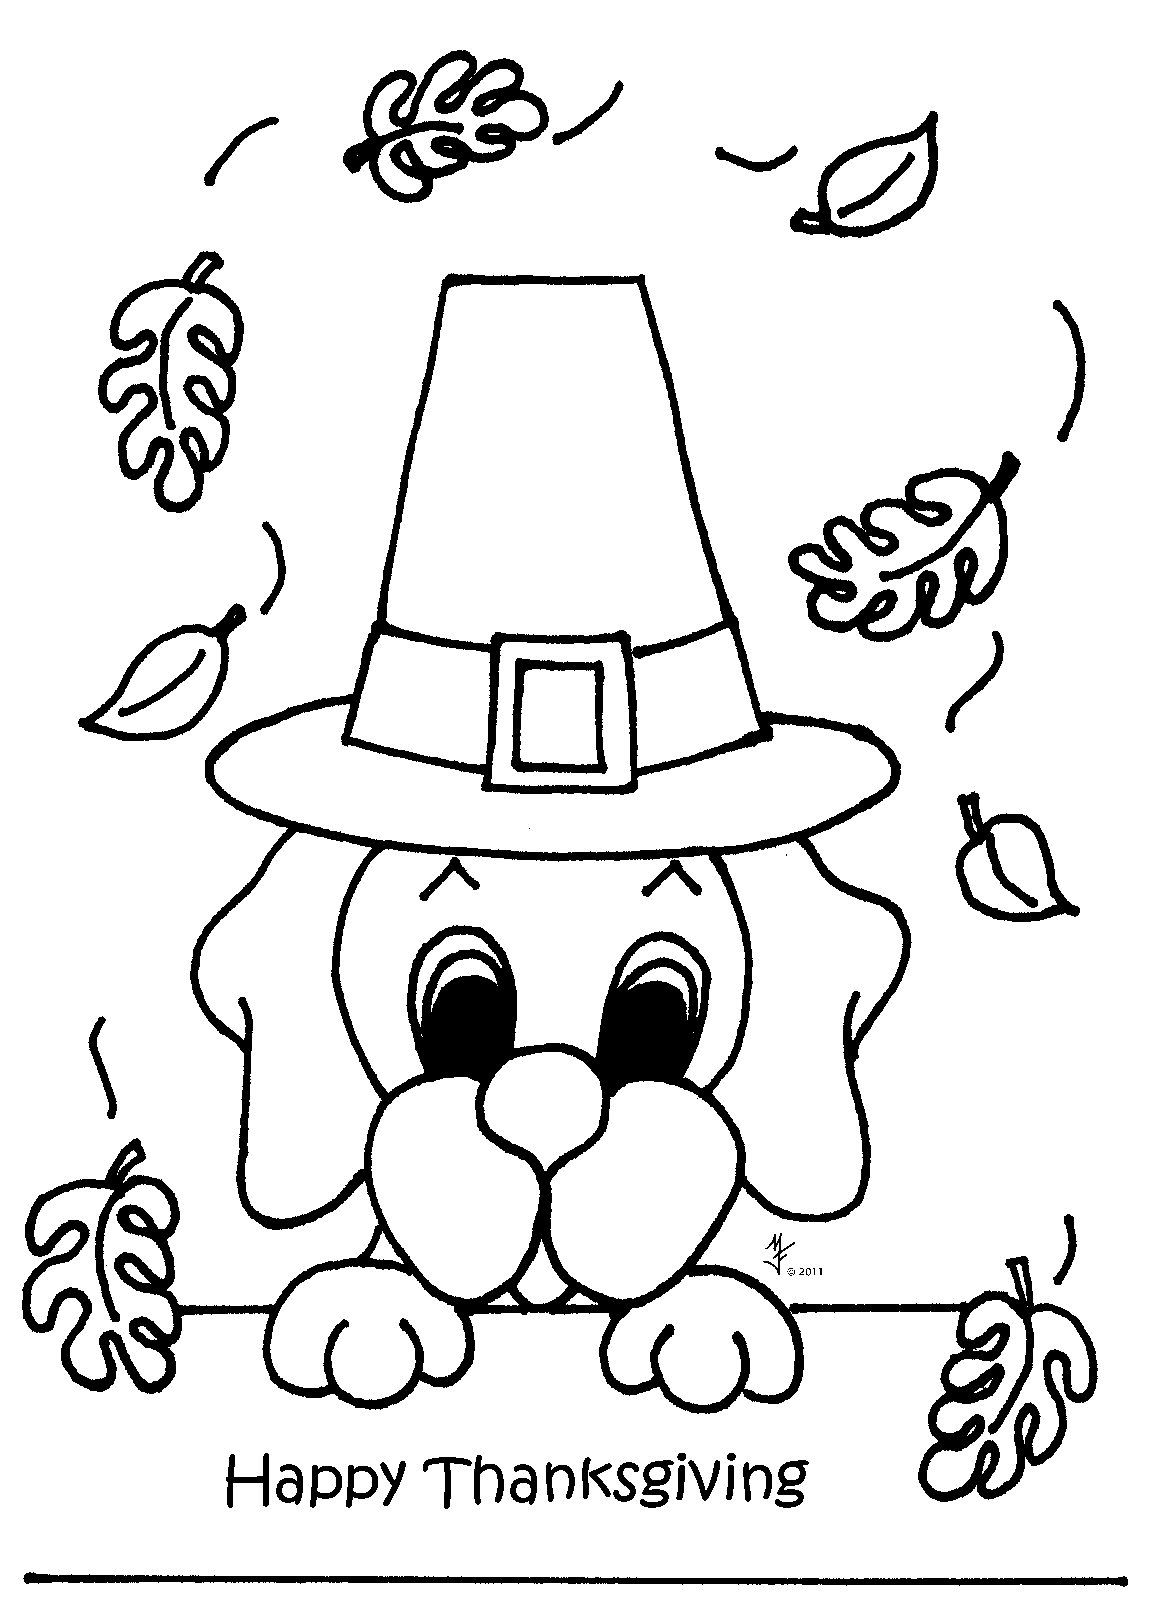 dog thanksgiving coloring pages - photo#1